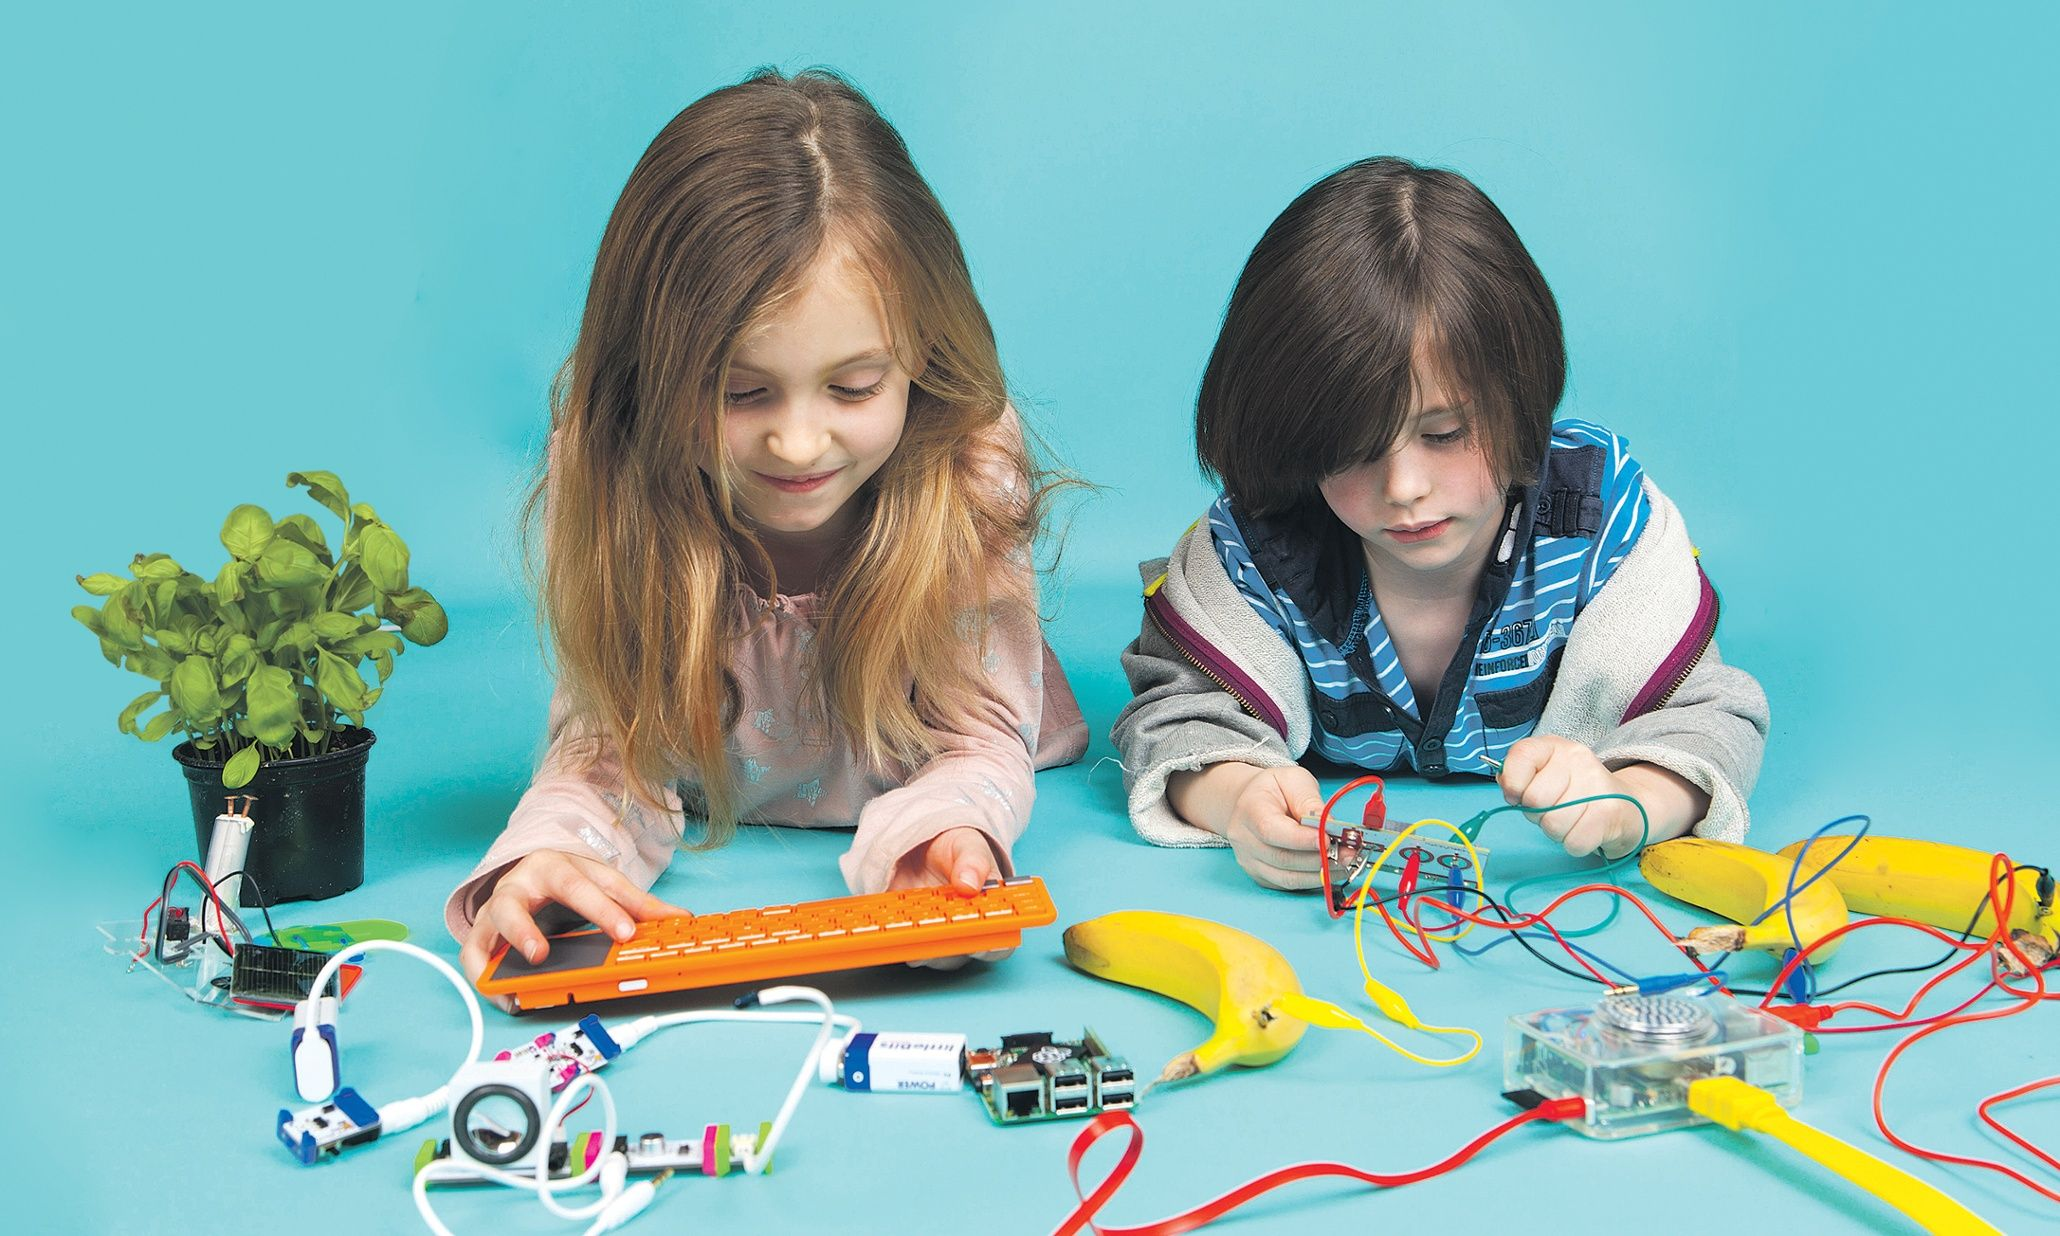 The Latest Kidtech Kits Tried And Tested Technology Stem Electronic For Kids Stef Lewandowski Give Your Children Chance To Be Creators Not Just Consumers Of